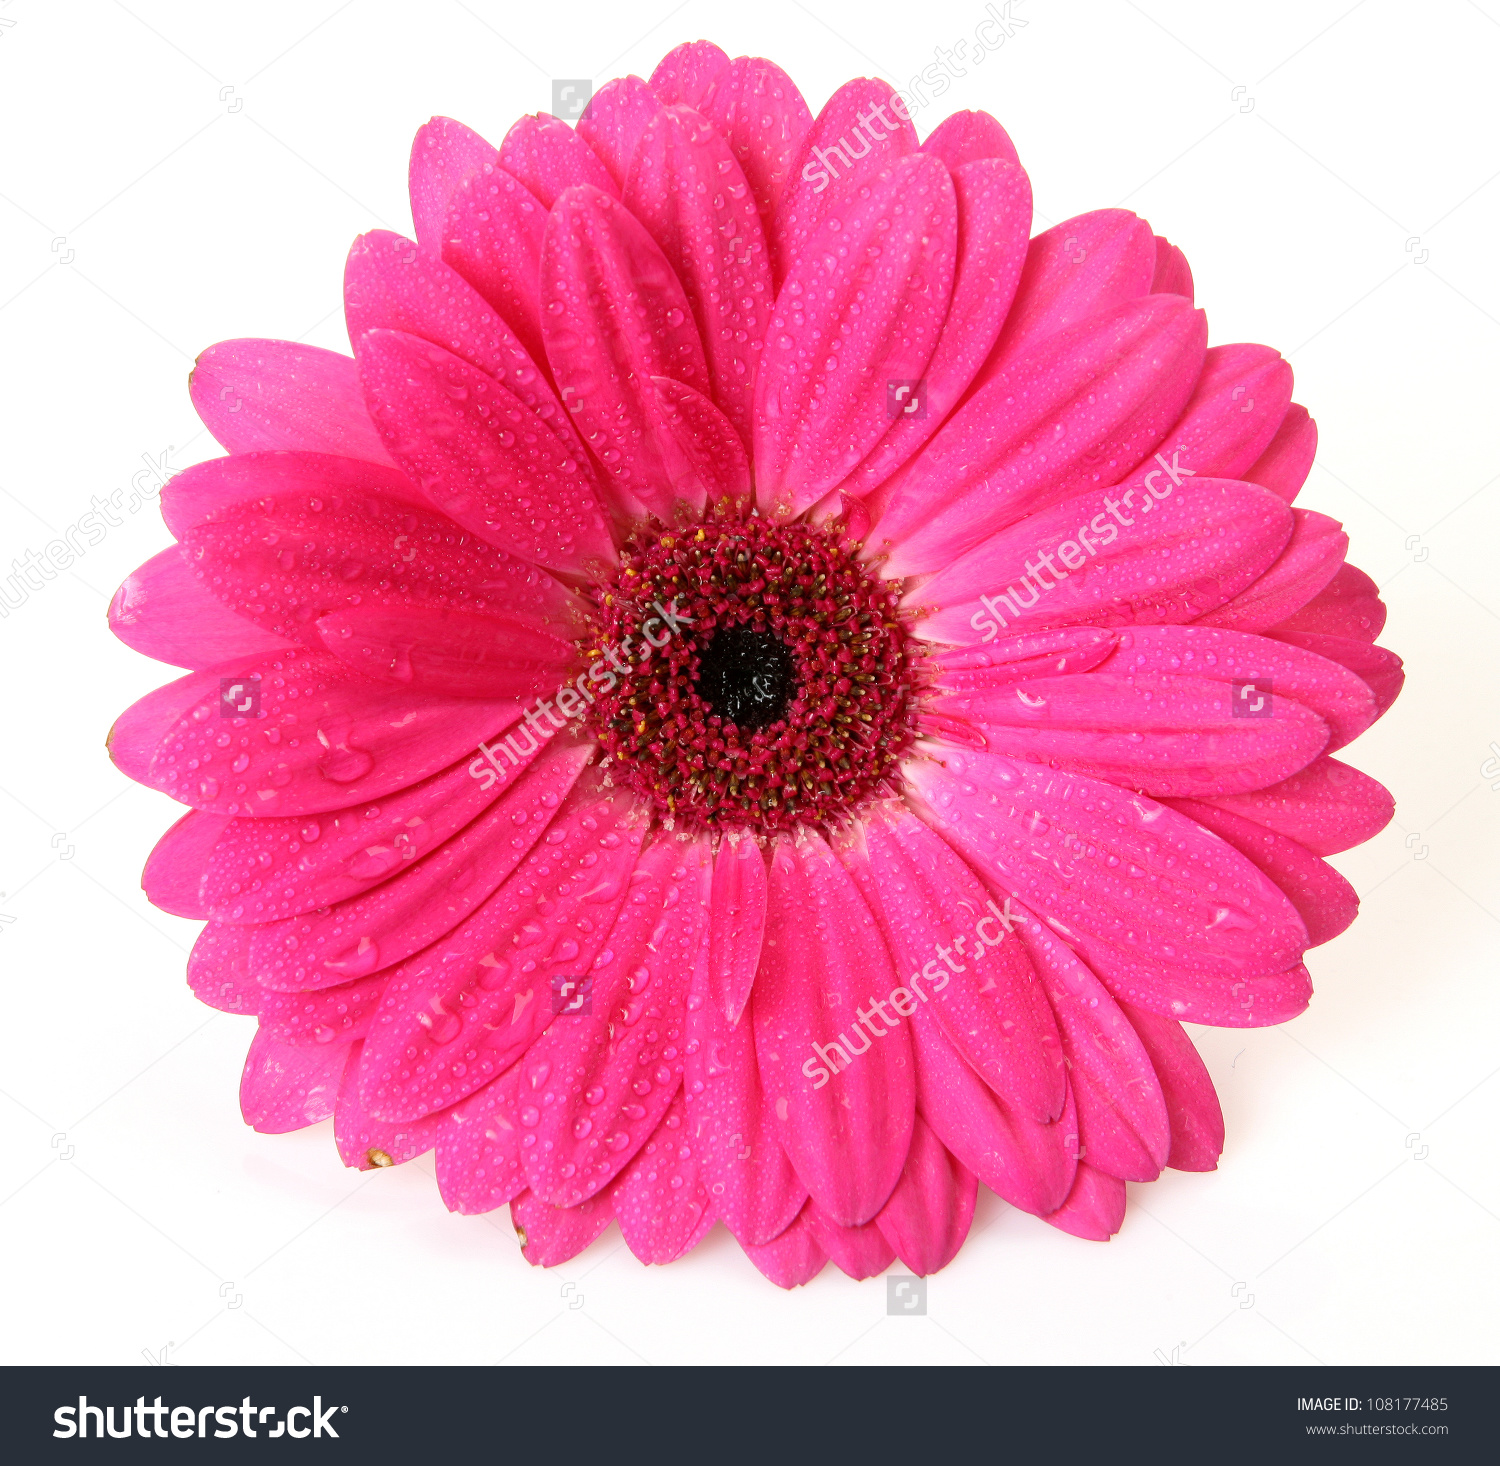 Free Photo Pink Flower Pink Summer Flower Free Download Jooinn